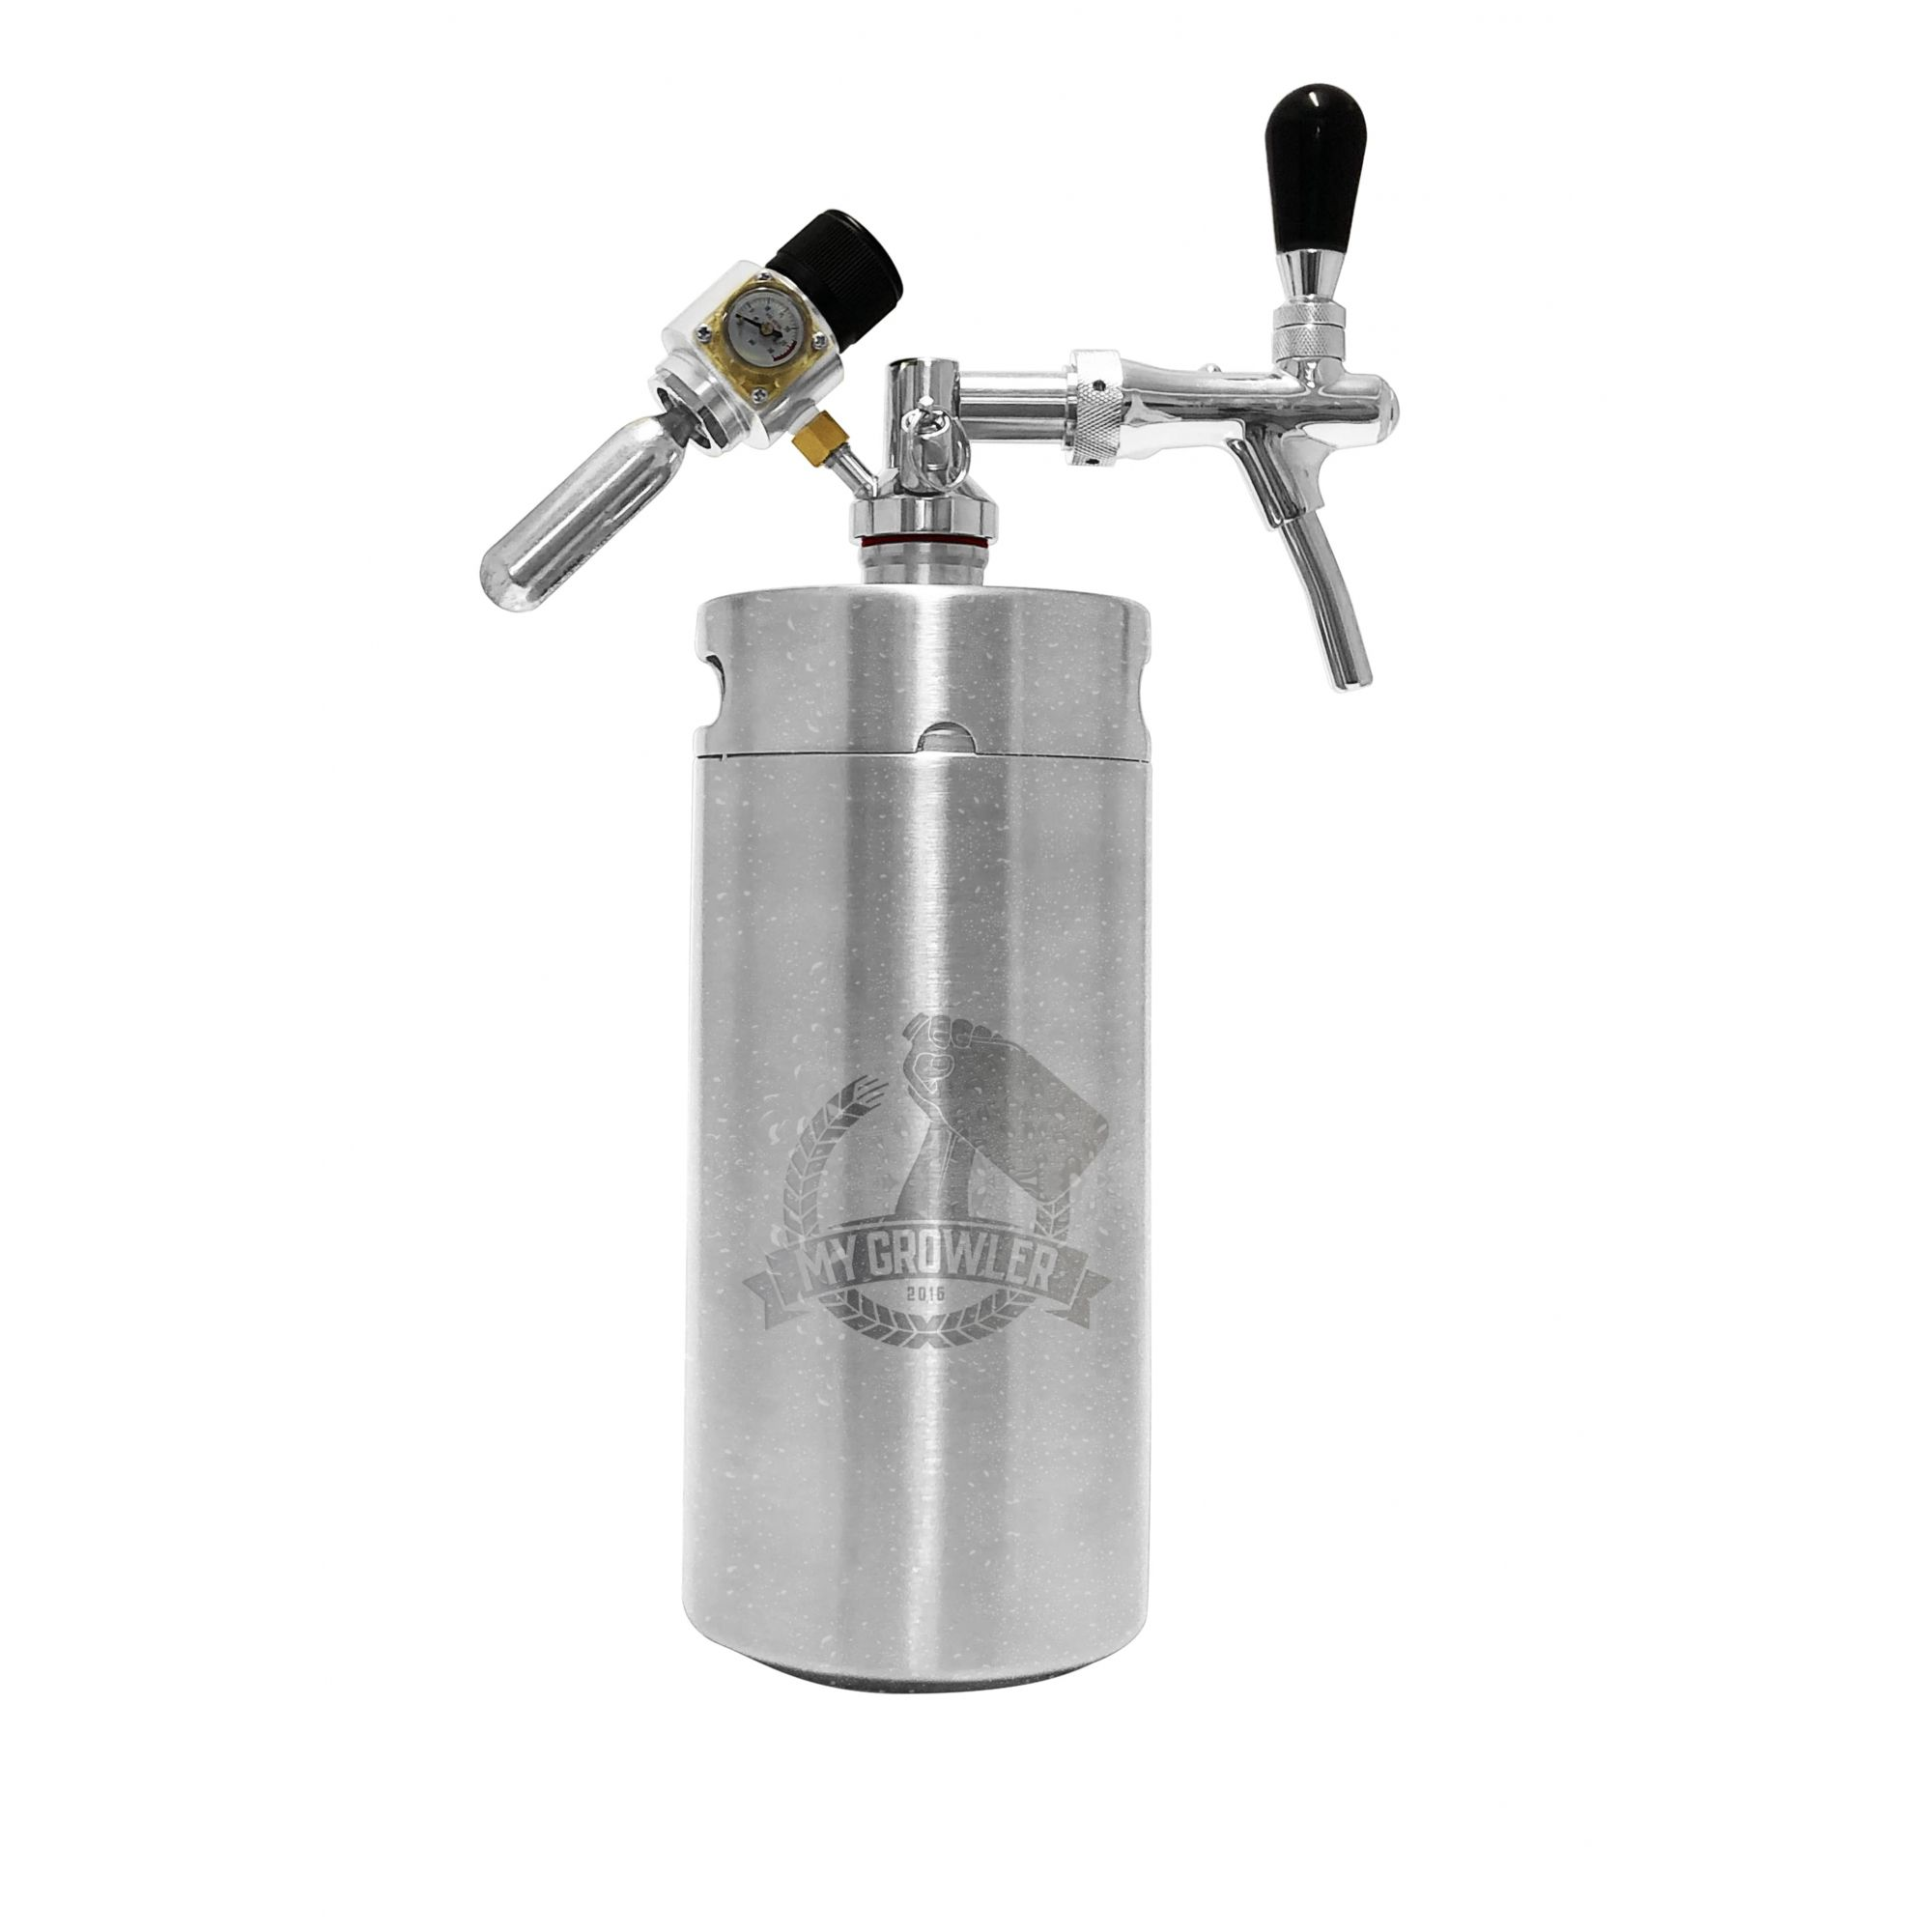 Kit My Keg Growler Inox 3,8L com Torneira Italiana Premium